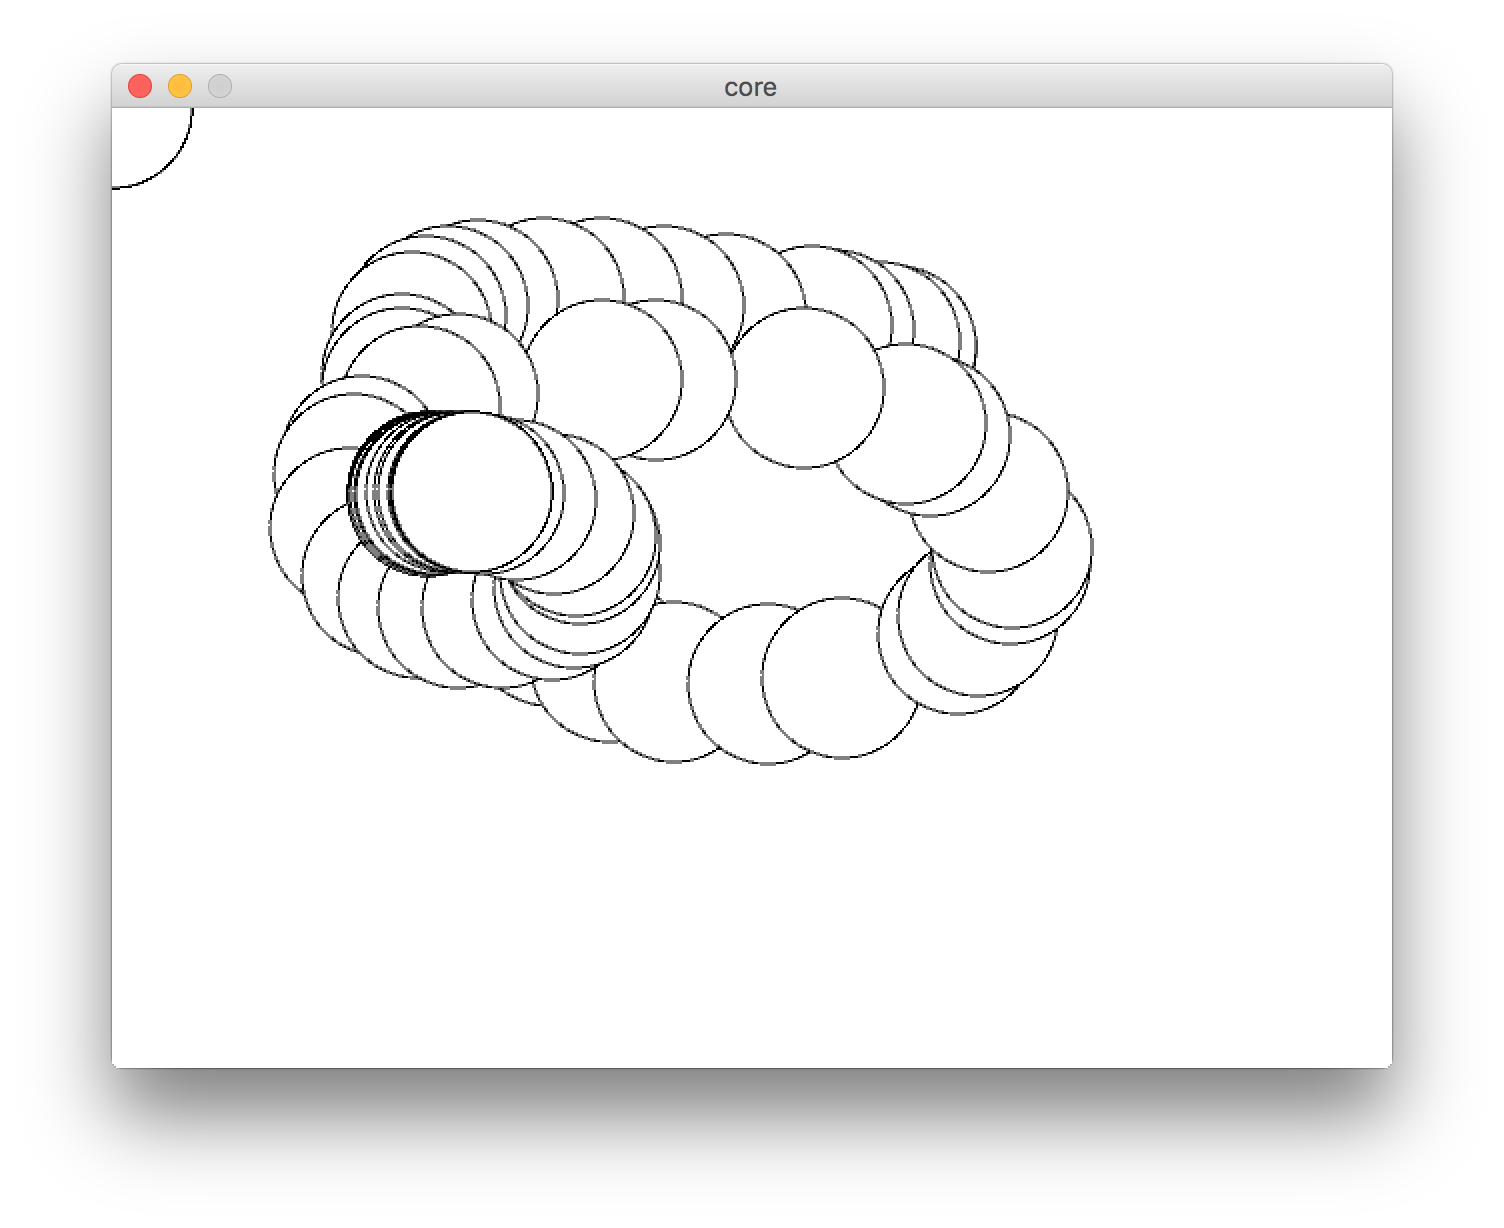 Processing drawing. Interactive development with clojure